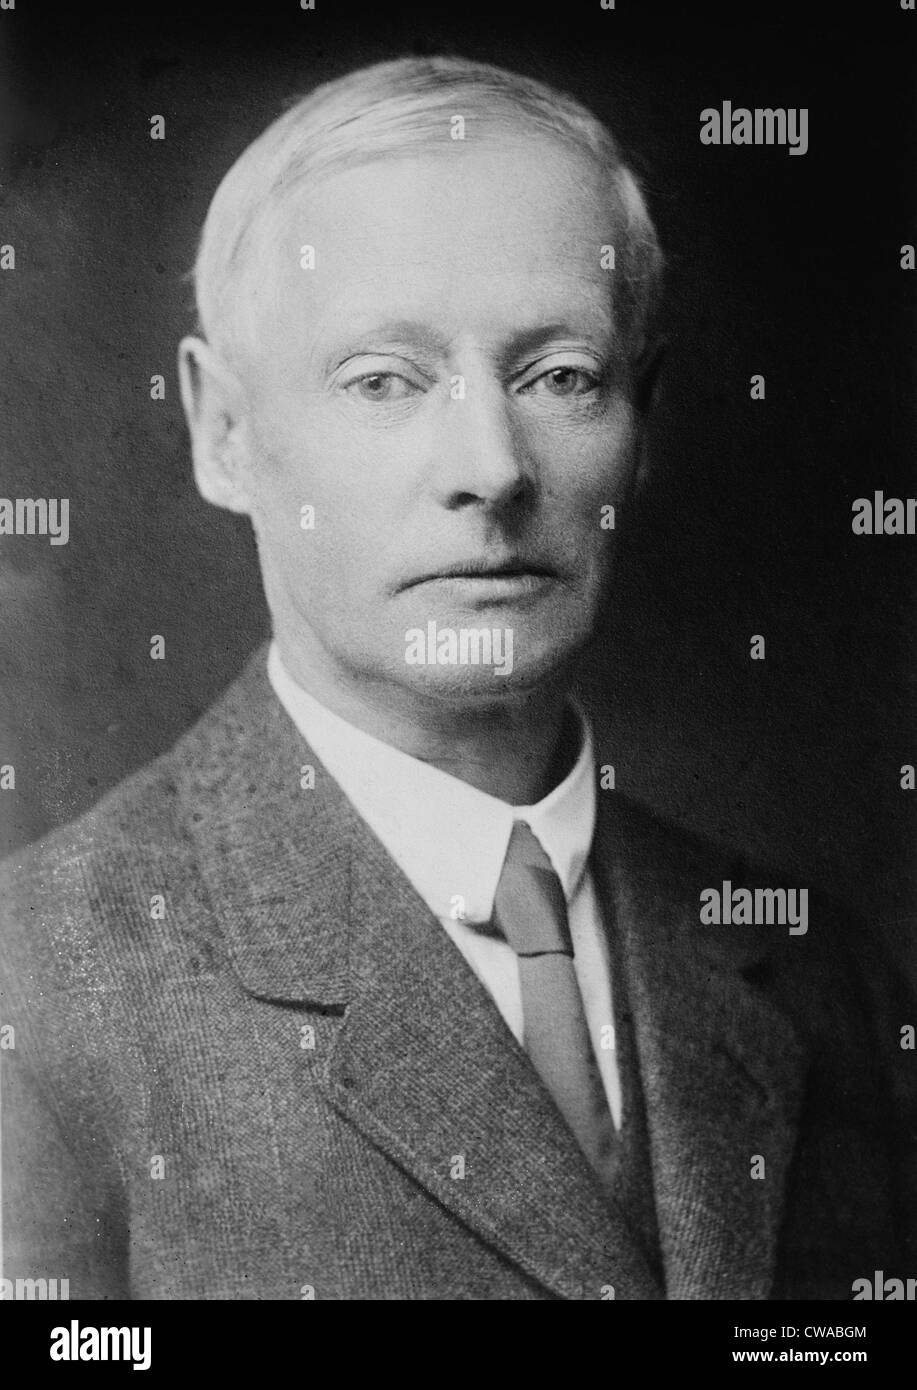 """W.W. Jacobs (1863-1943) English author of horror stories, best known for """"The Monkey's Paw"""" 1902. 1920 portrait. - Stock Image"""